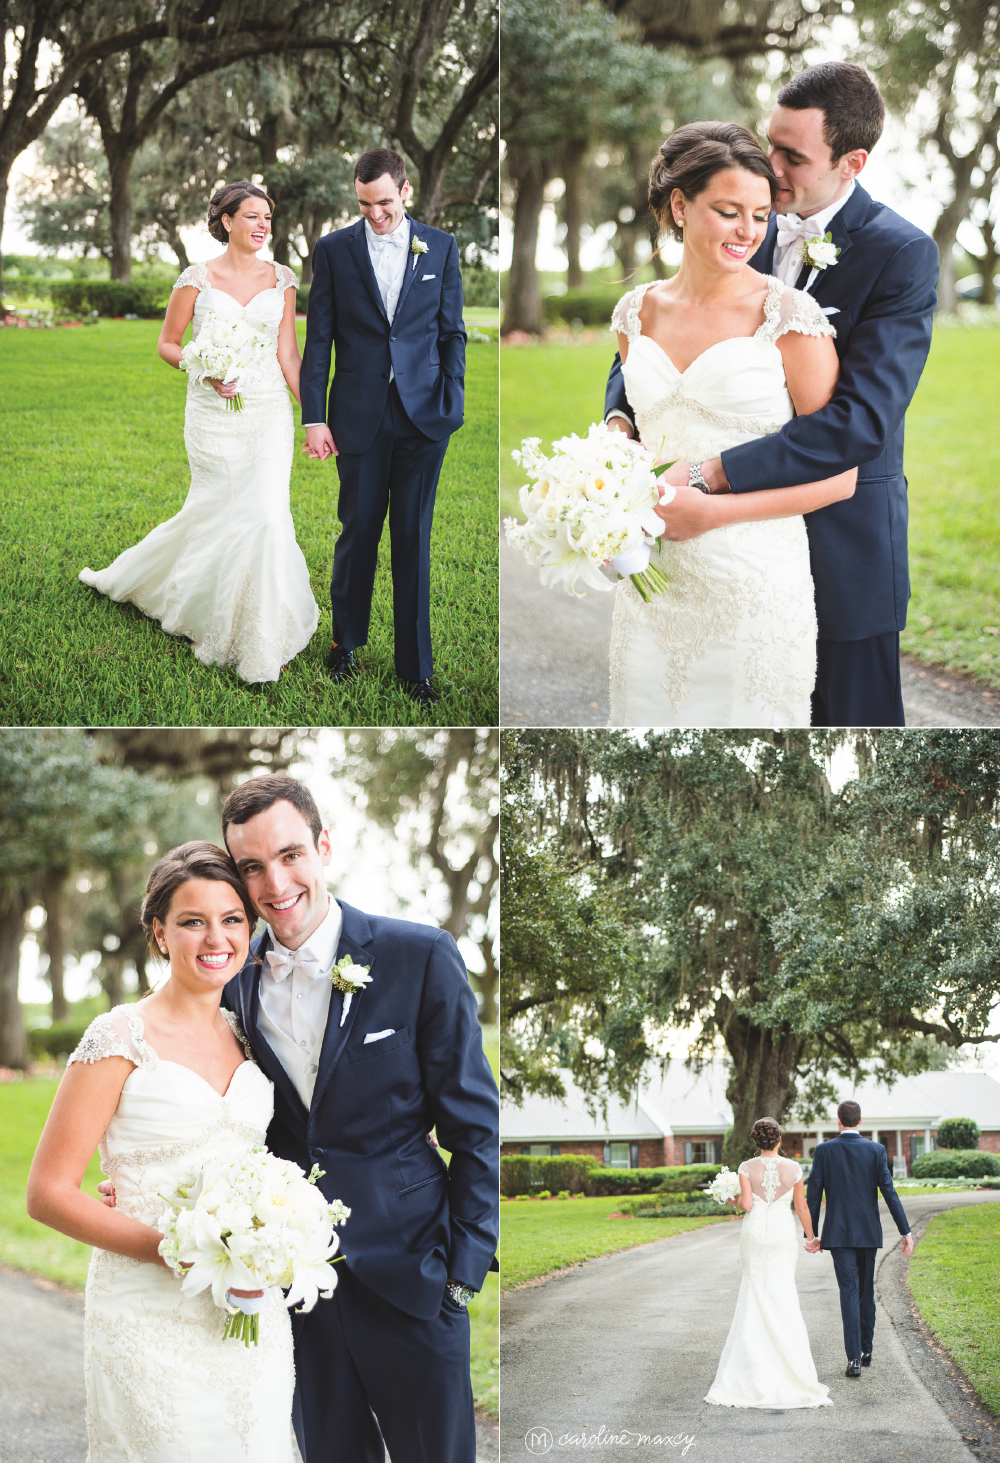 Shelby and David tie the knot!Wauchula, FL Wedding Photography with Caroline Maxcy Photography.